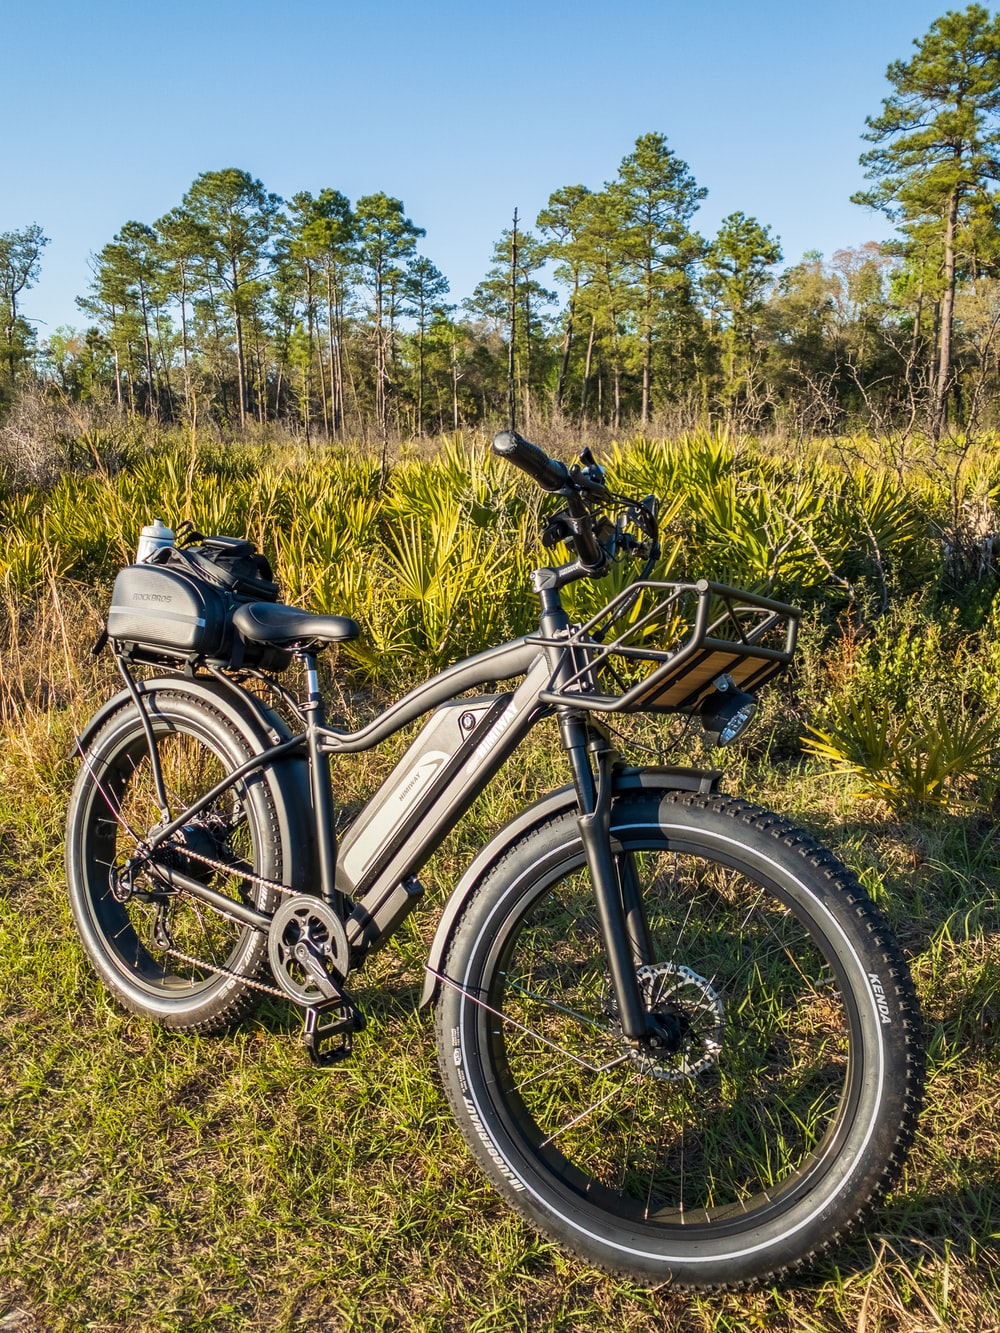 black and white mountain bike on green grass field during daytime